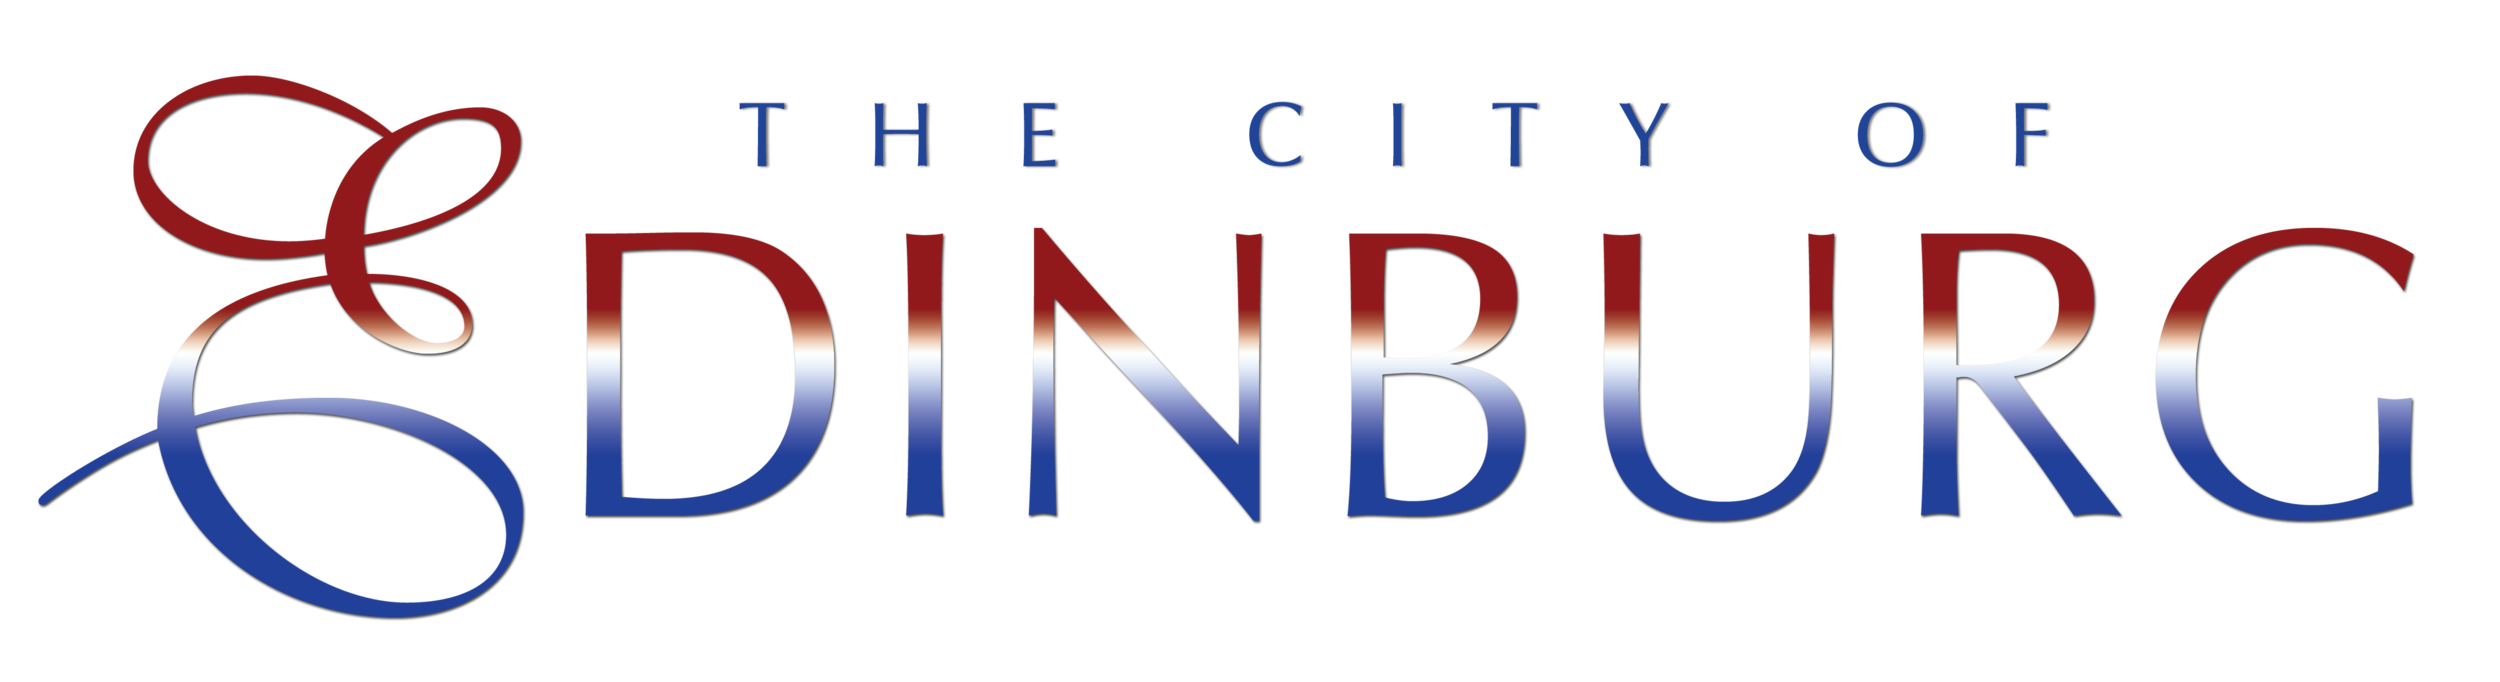 city logo transparent 2.png